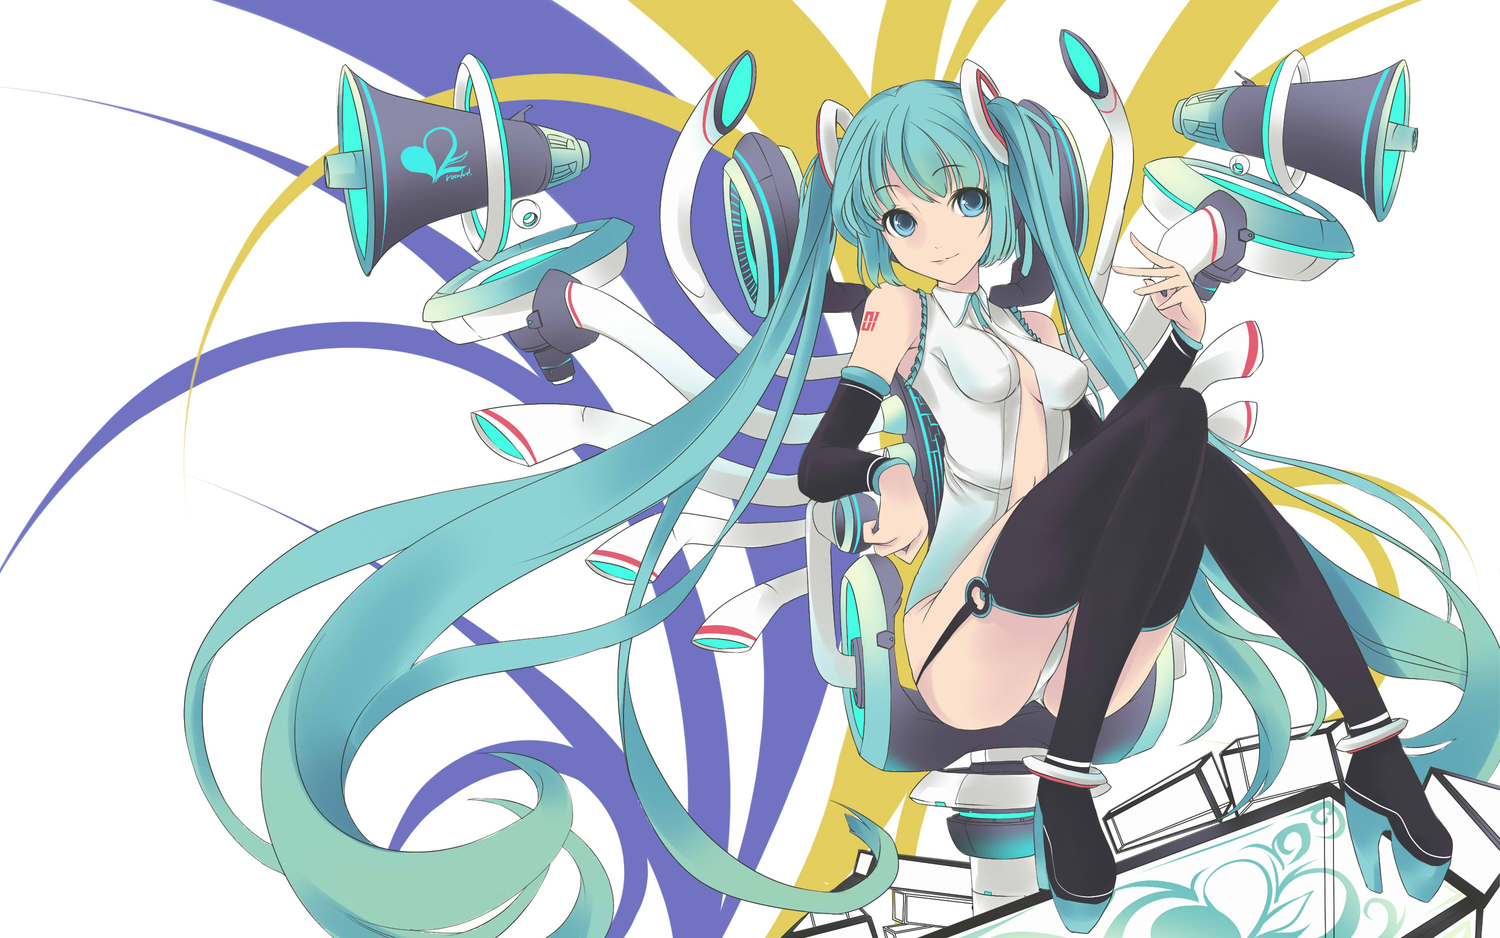 blue_eyes blue_hair faefaea hatsune_miku jpeg_artifacts long_hair miku_append twintails vocaloid